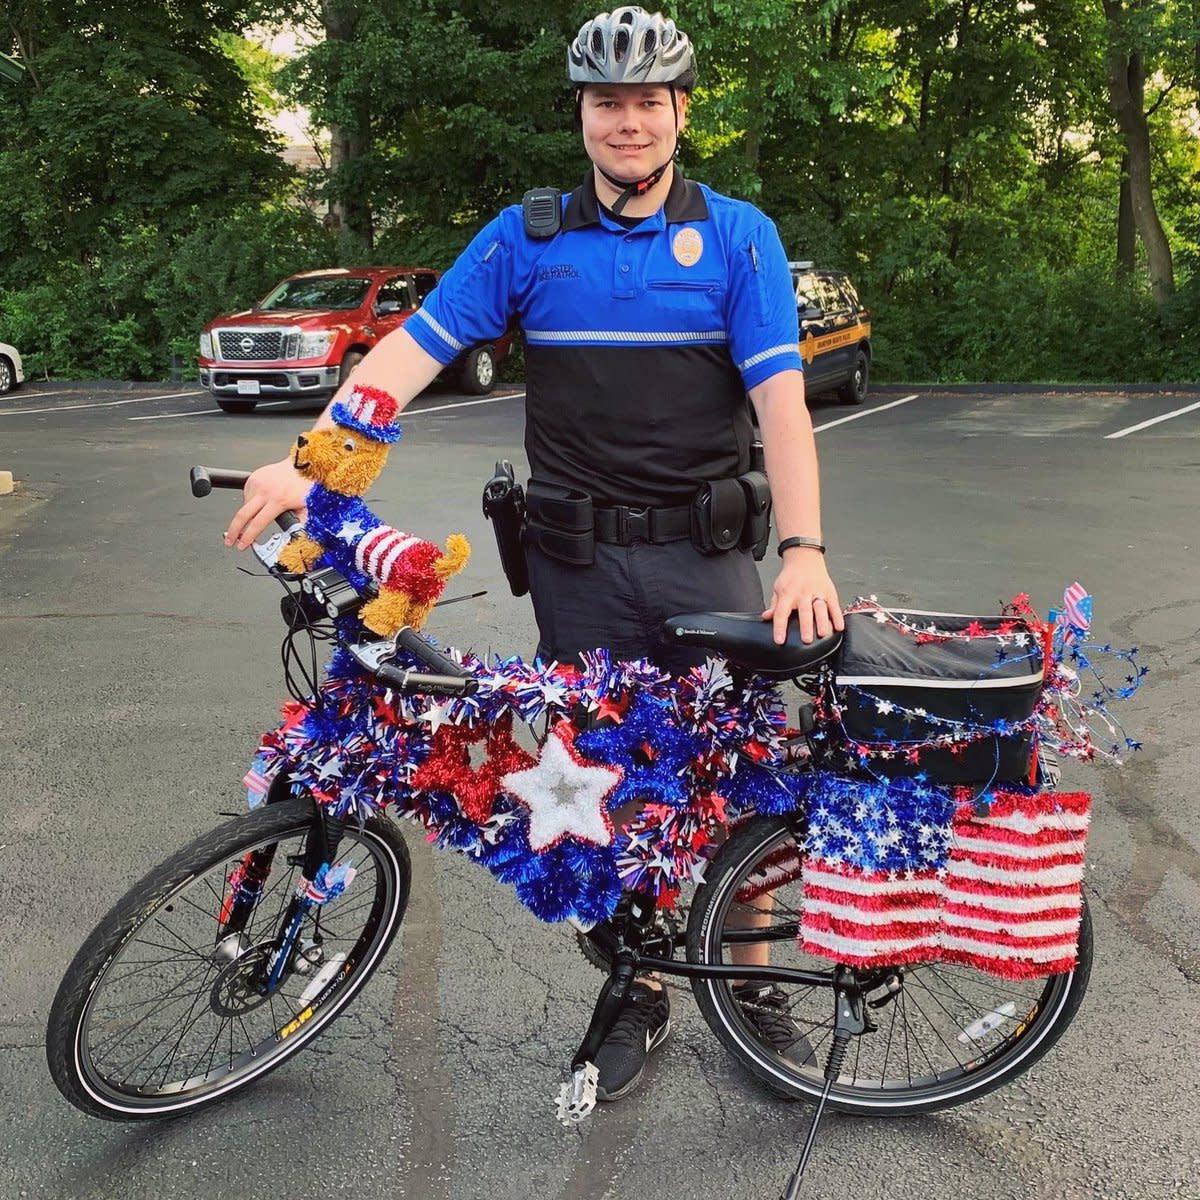 Grandview Heights Police patriotic bike decoration